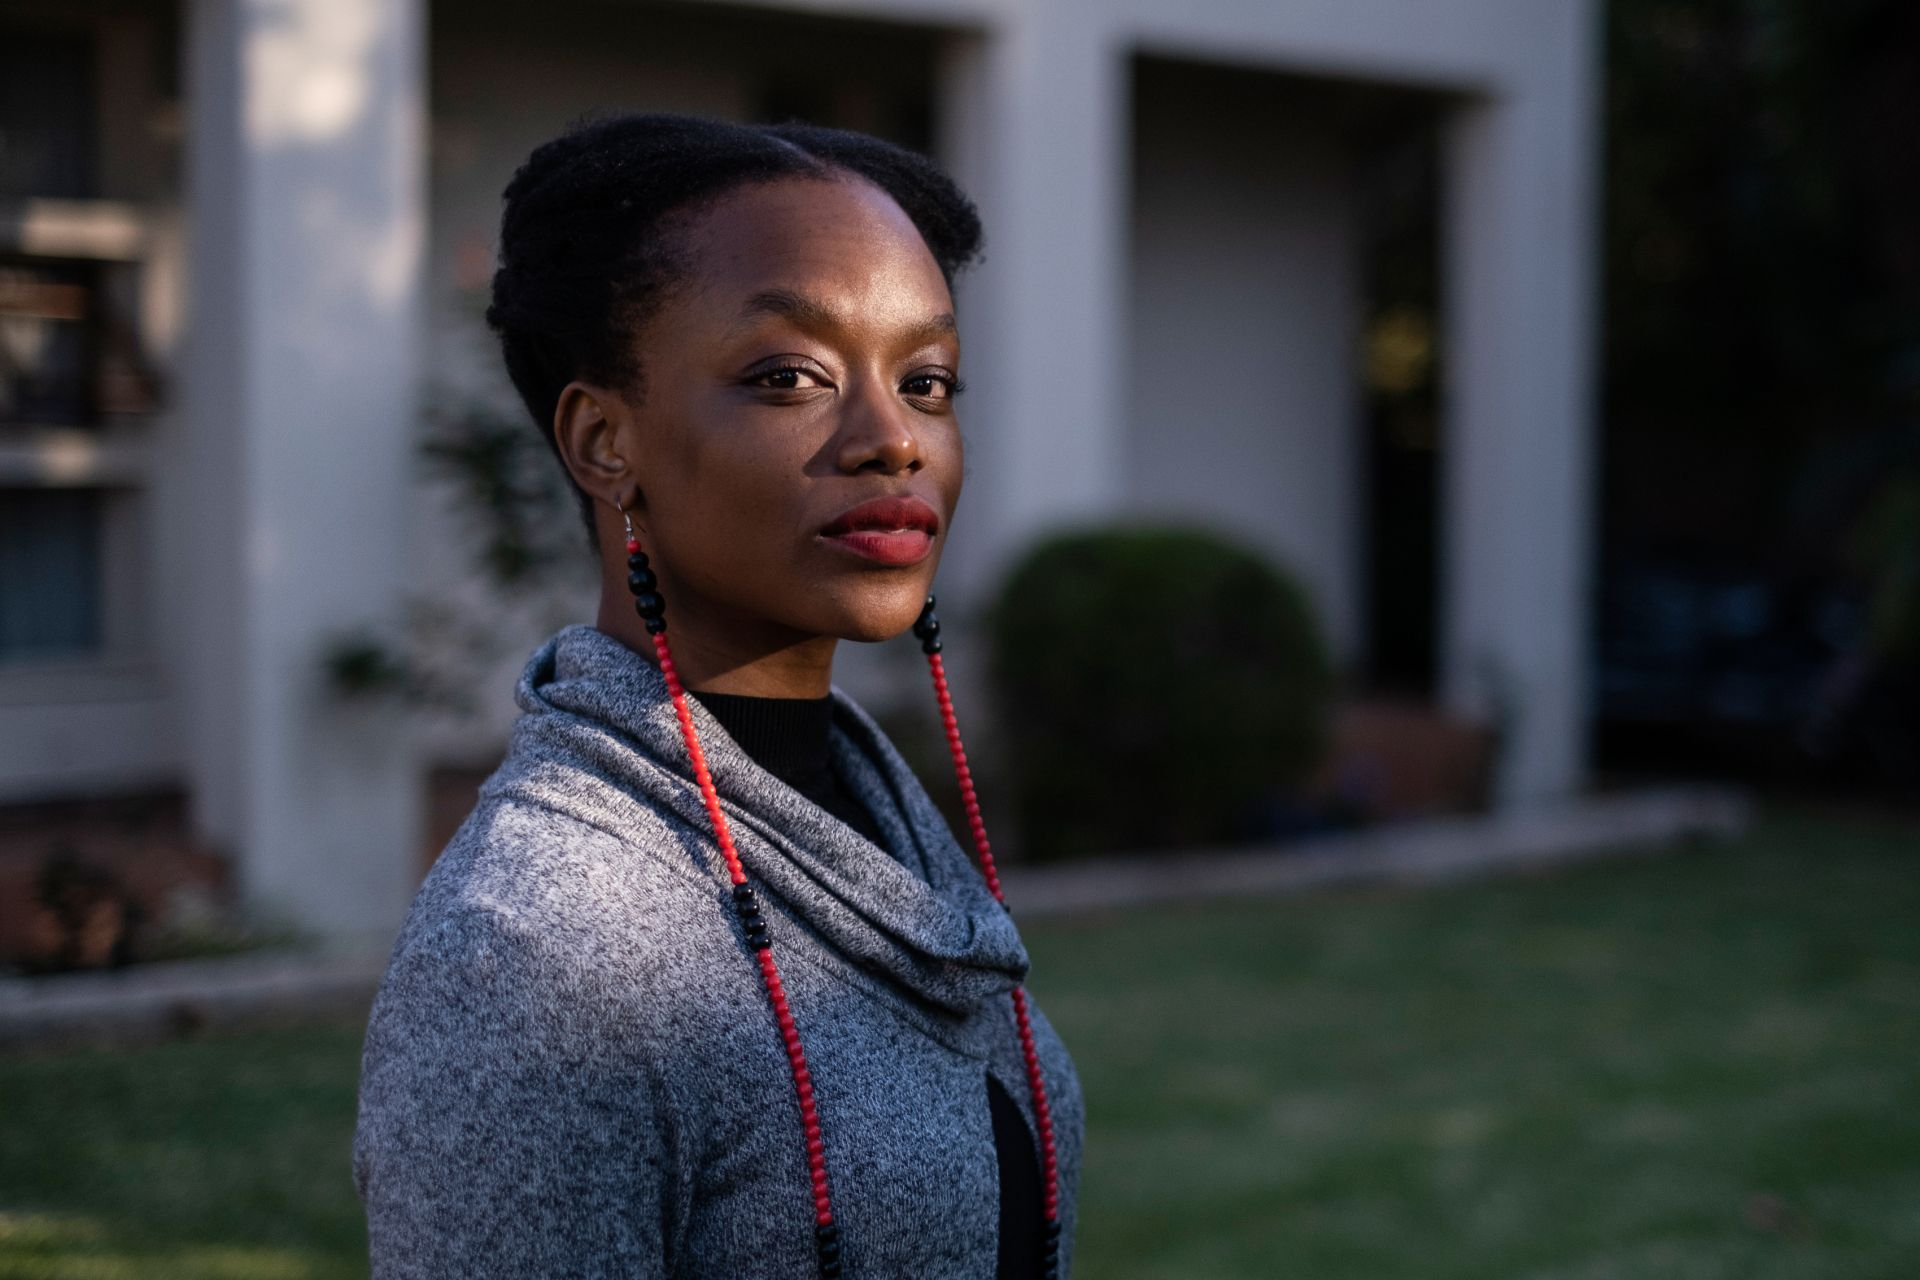 Tendaiishe Chitima, the lead actress in the Zimbabwean film Cook Off, poses for a portrait at her home in Sandton on May 28, 2020. - Cook Off will be available to stream on Netflix on June 1, 2020. (Photo by WIKUS DE WET / AFP)